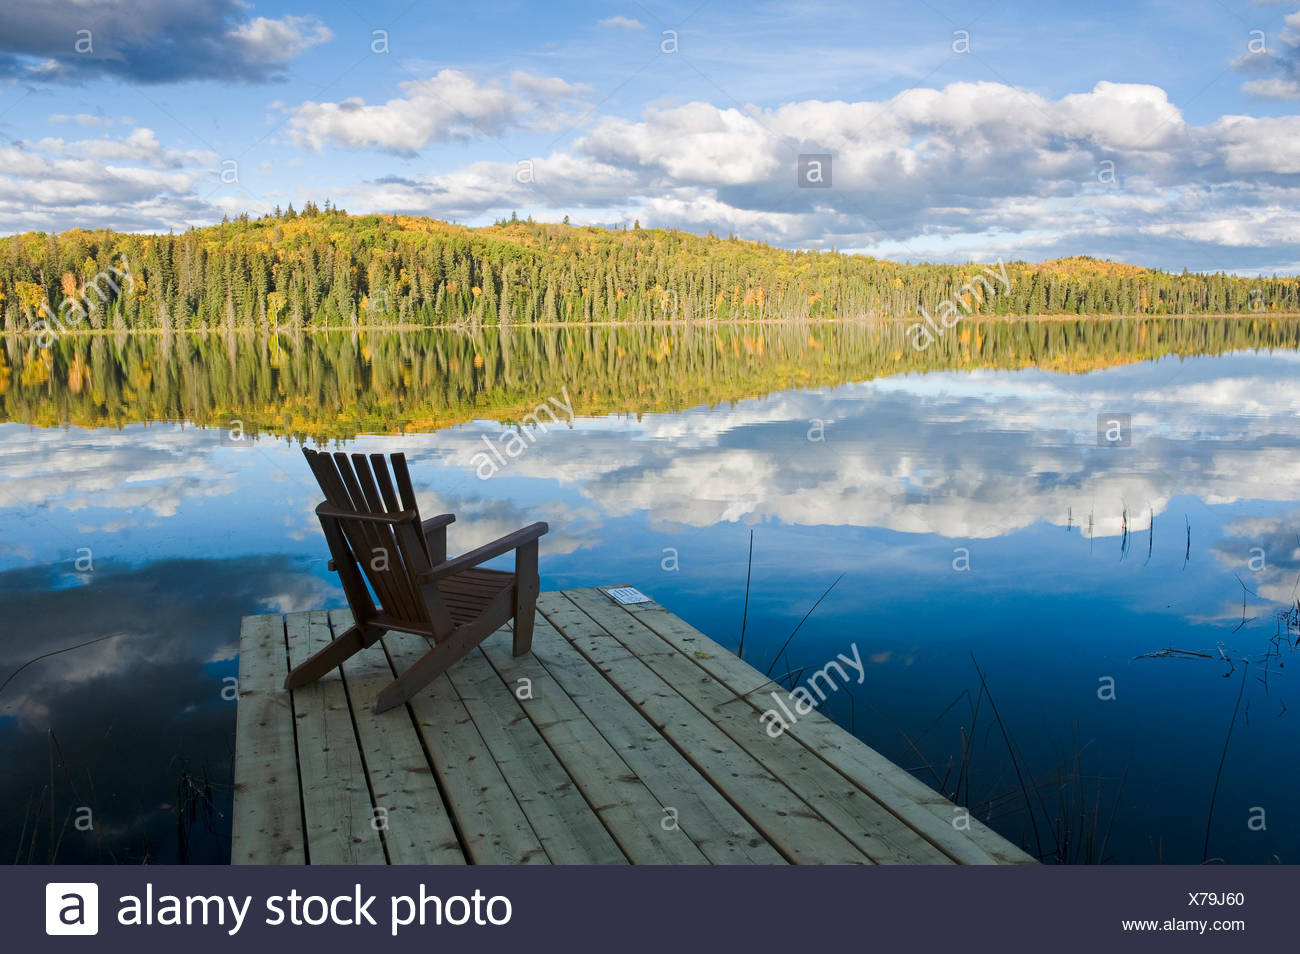 Muskoka chair on dock, Spray Lake , Duck Mountain Provincial Park, Manitoba, Canada - Stock Image